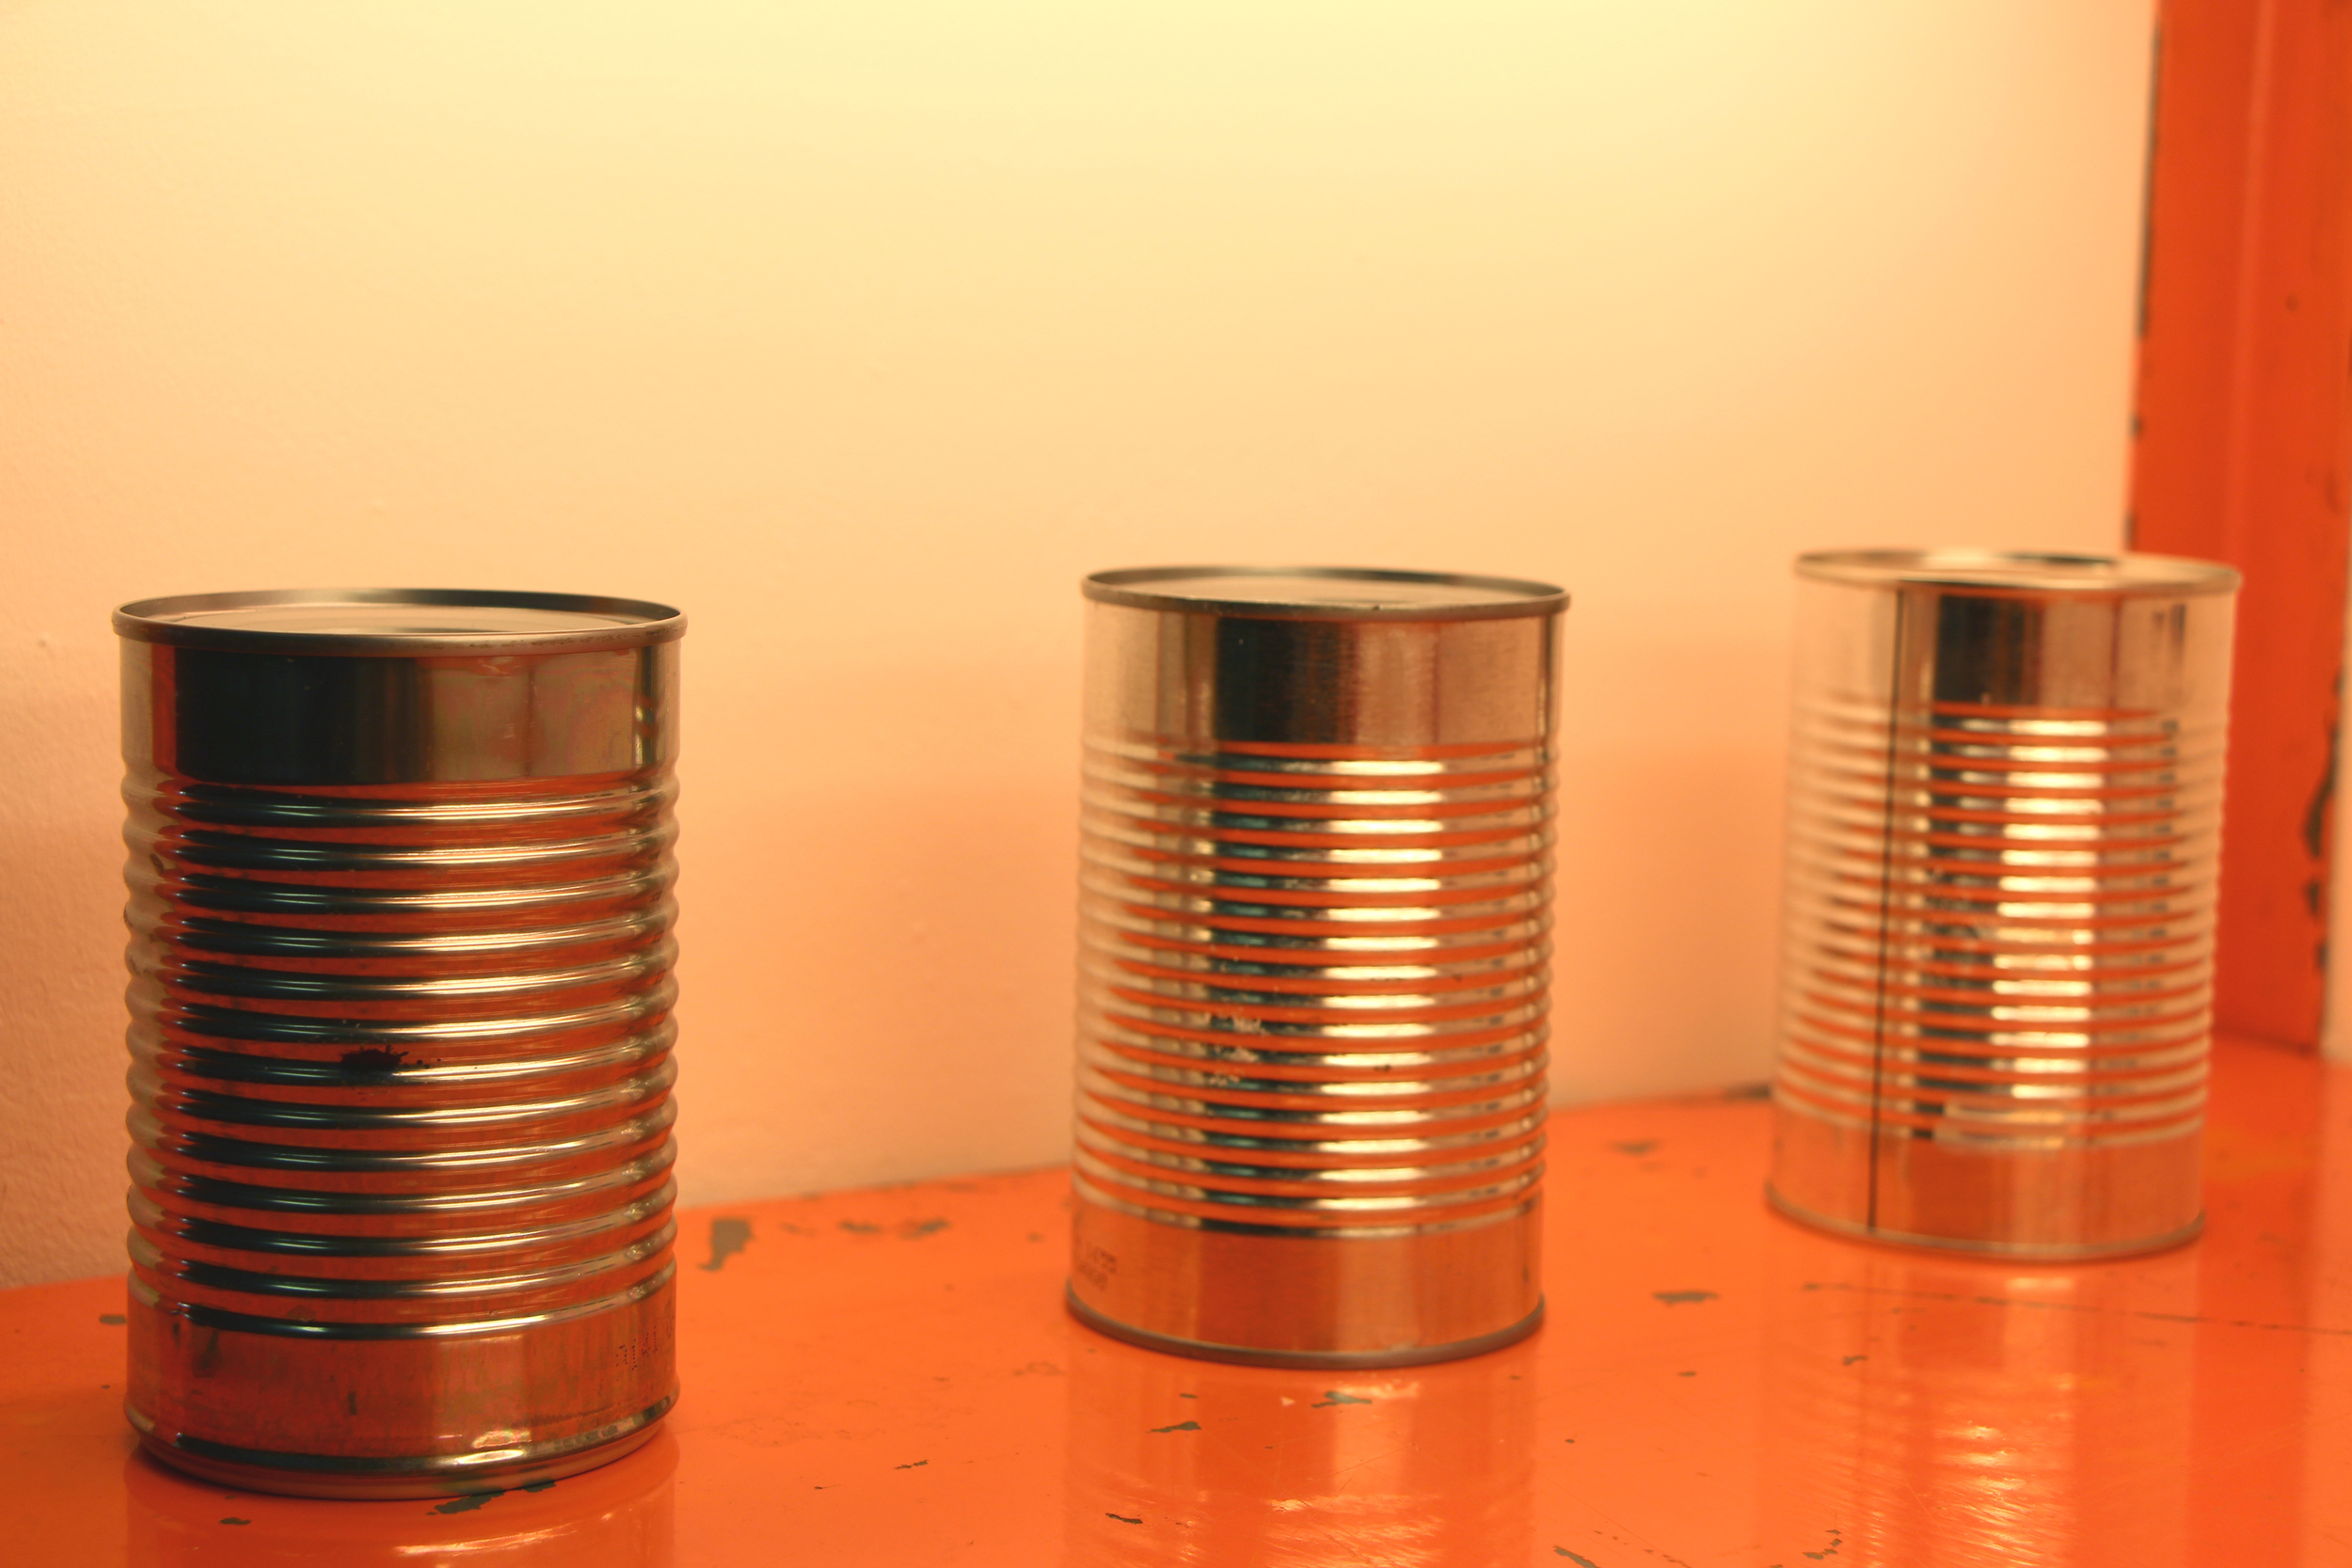 411 g, 432 g, 439 g   aluminum cans and contents